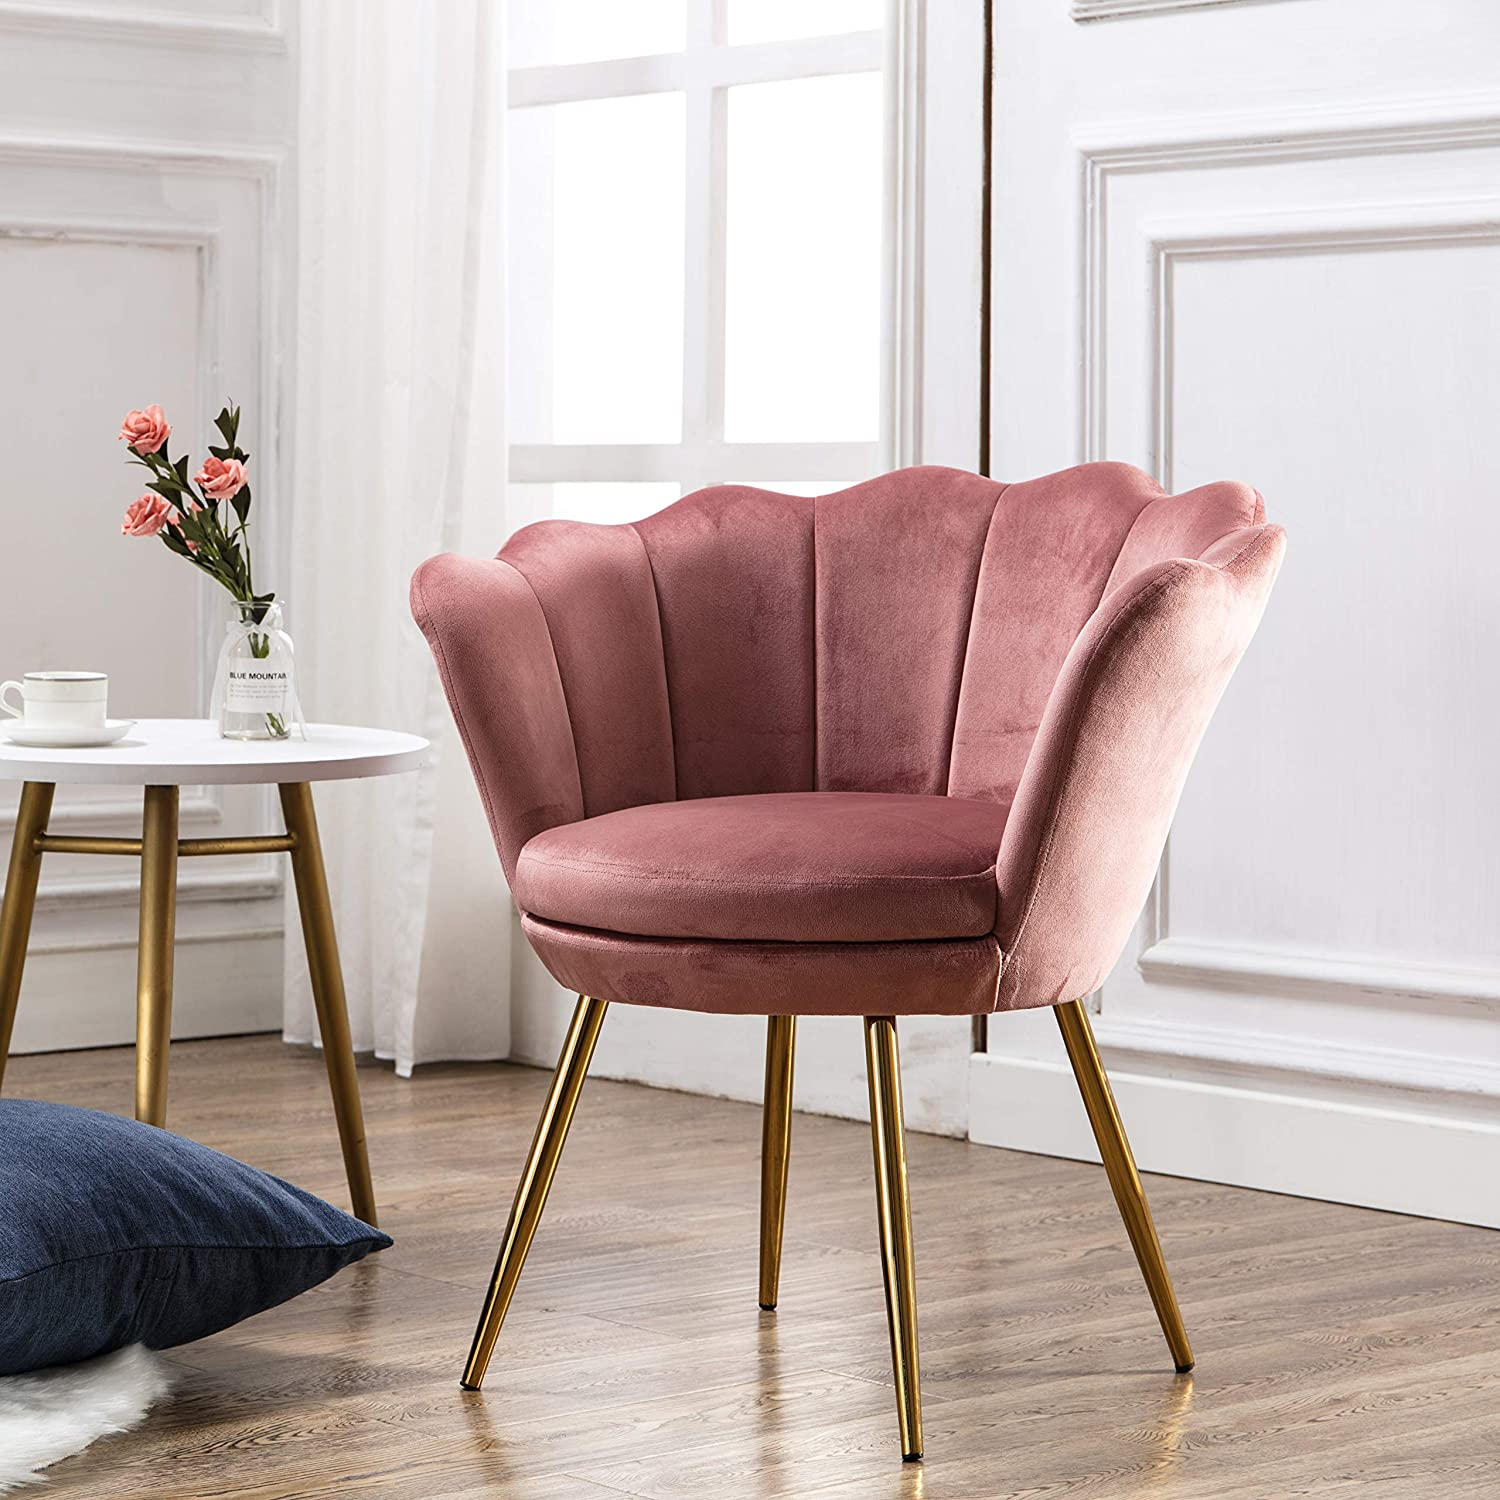 Upholstered Lotus Vanity Chair, Velvet Accent Armchair Single Sofa